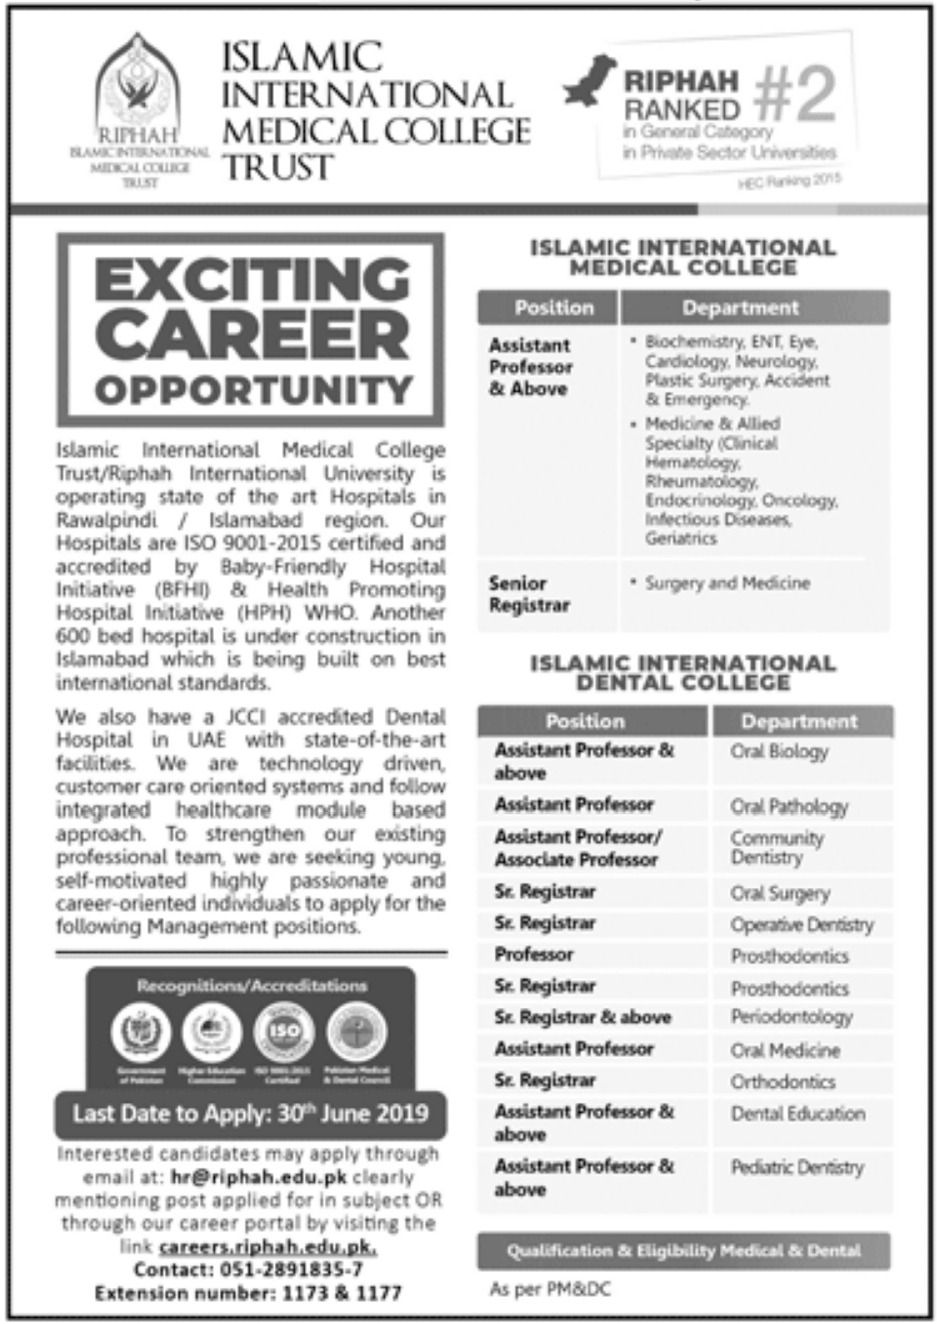 Riphah Islamic International Medical College Trust Islamabad Jobs 2019 Latest